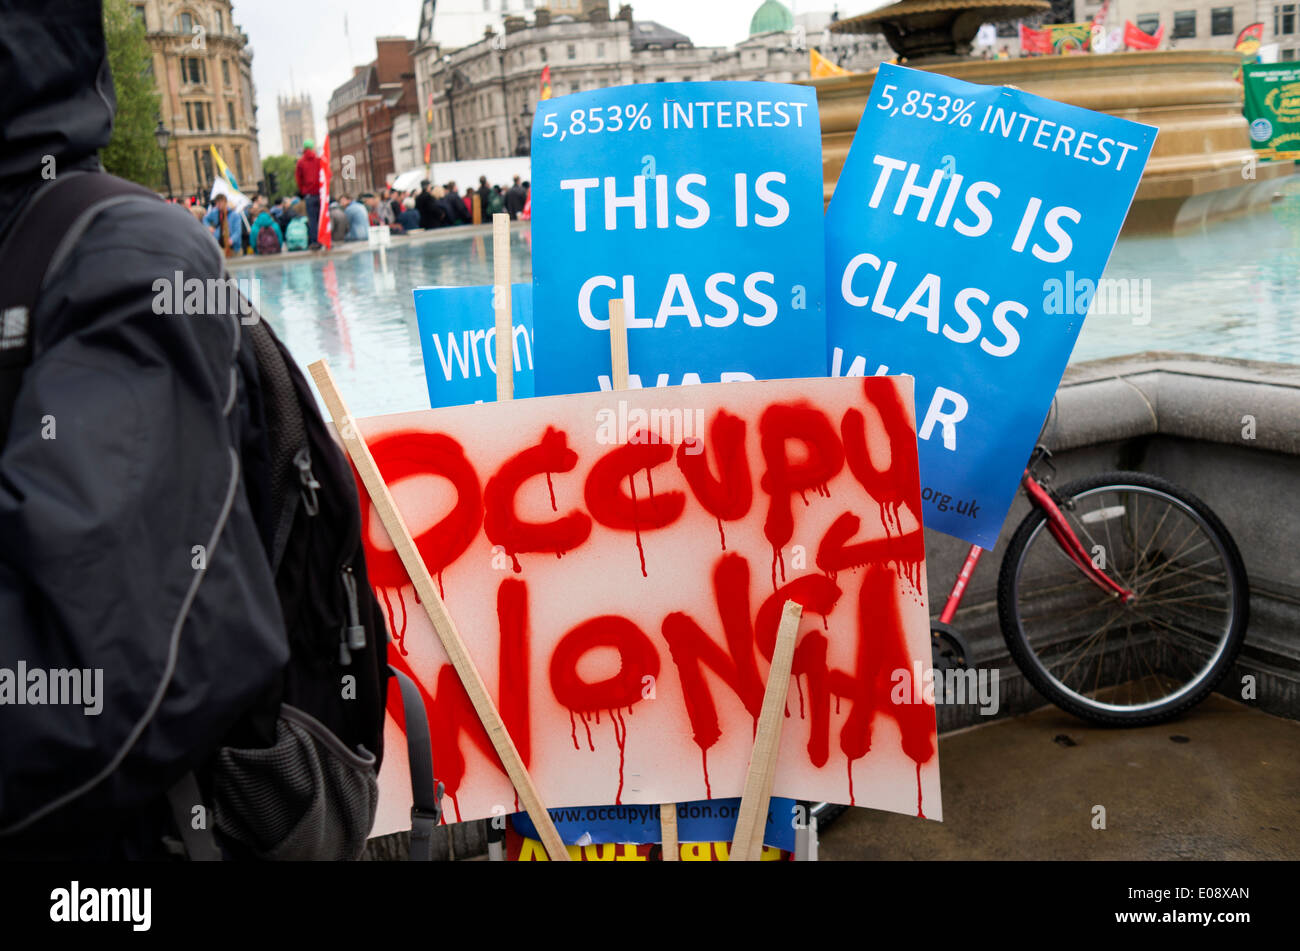 Class War placards in Trafalgar Square during the London May Day rally 2014. - Stock Image